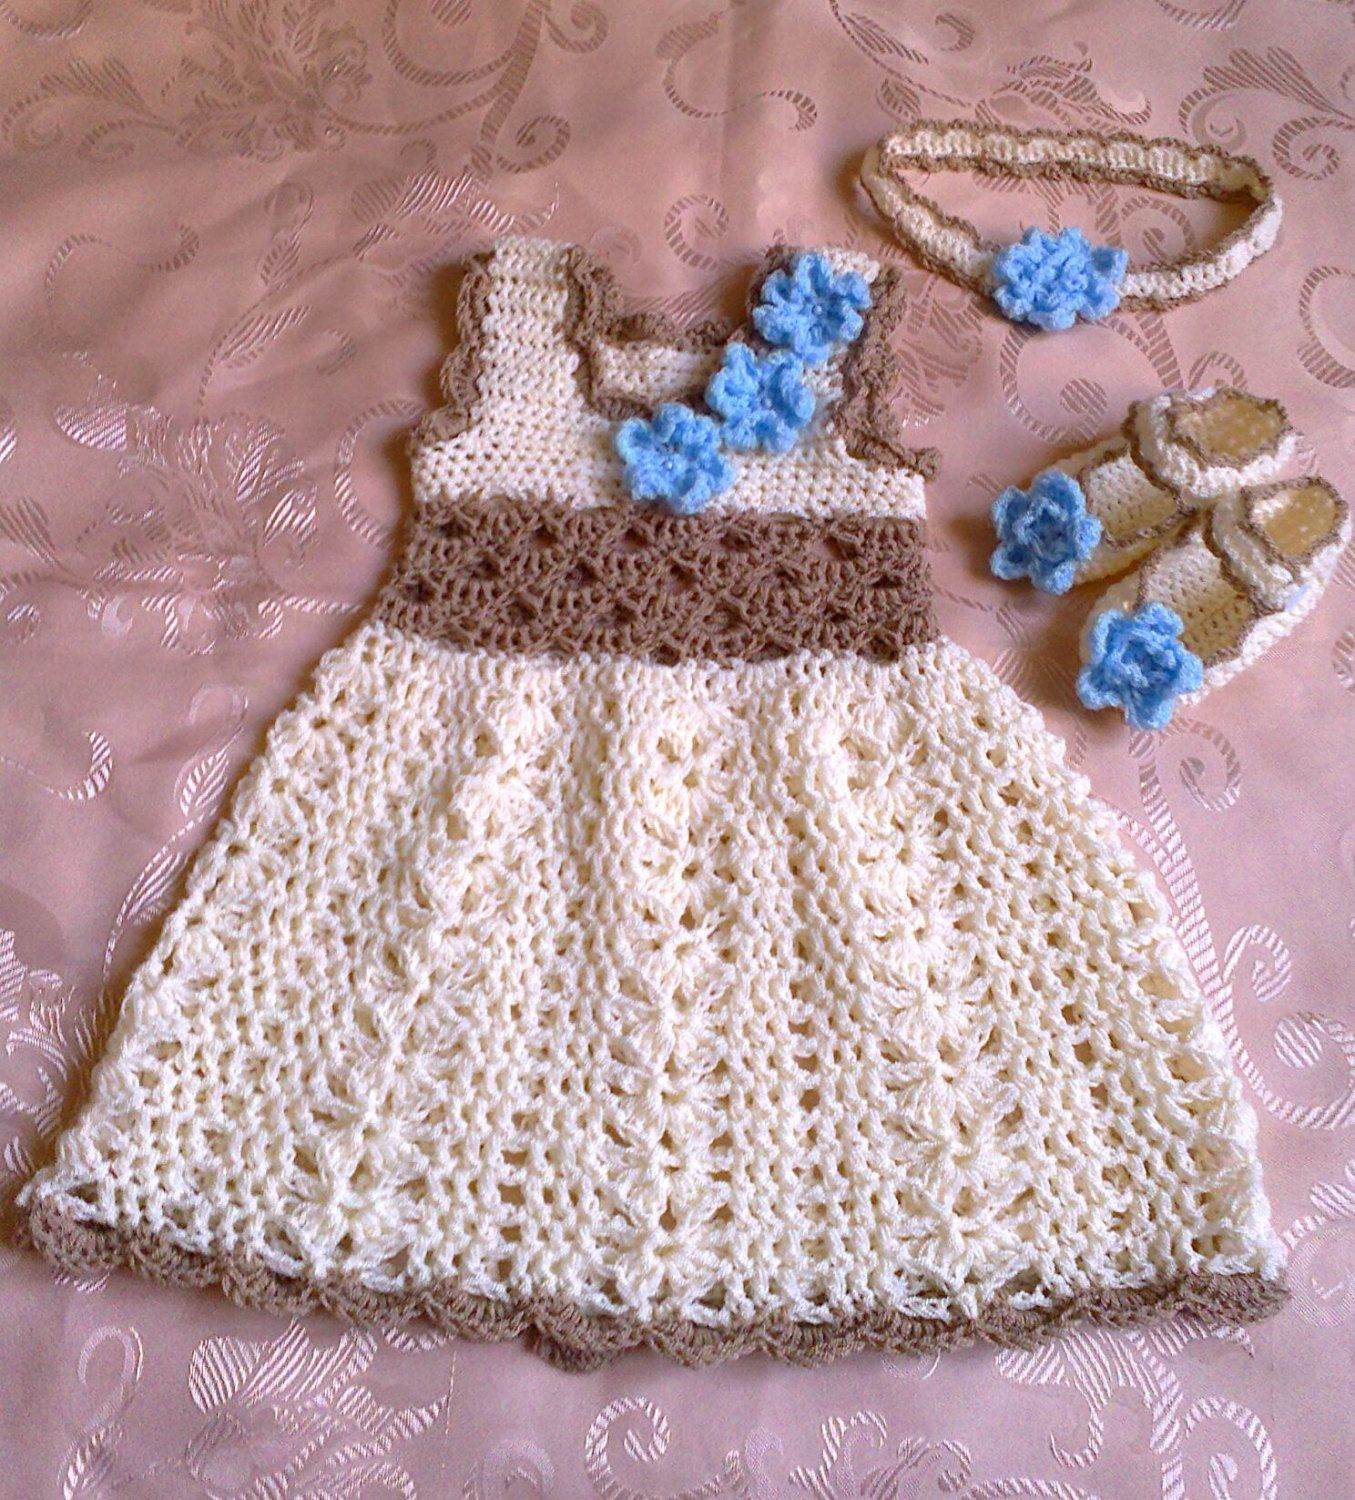 Crochet baby dress baby girl dress crochet girl dress infant crochet baby dress baby girl dress crochet girl dress infant dress crochet newborn baby dress cream brown dress bankloansurffo Choice Image